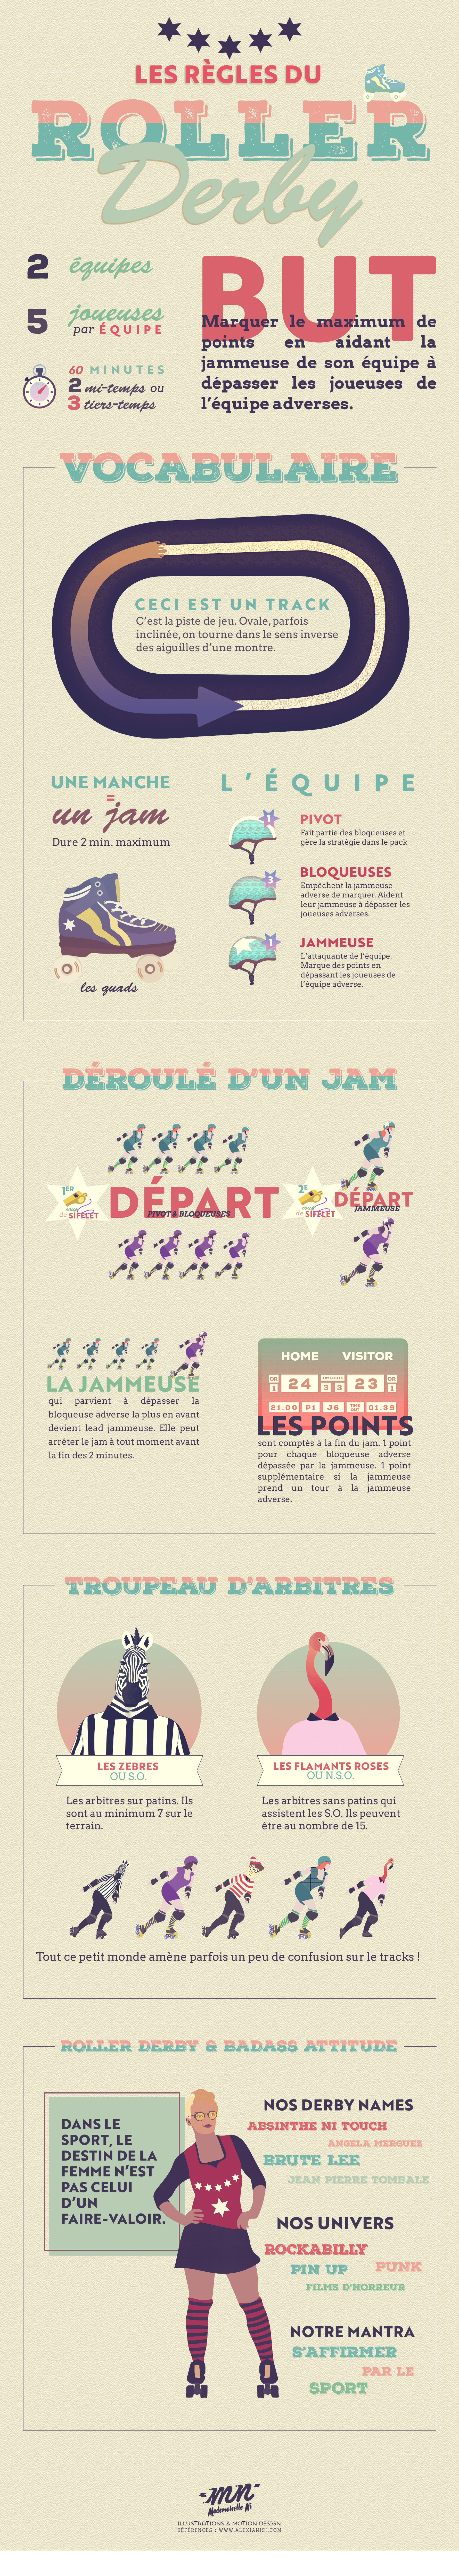 arlyo_rollerderby_infographie_v3-min